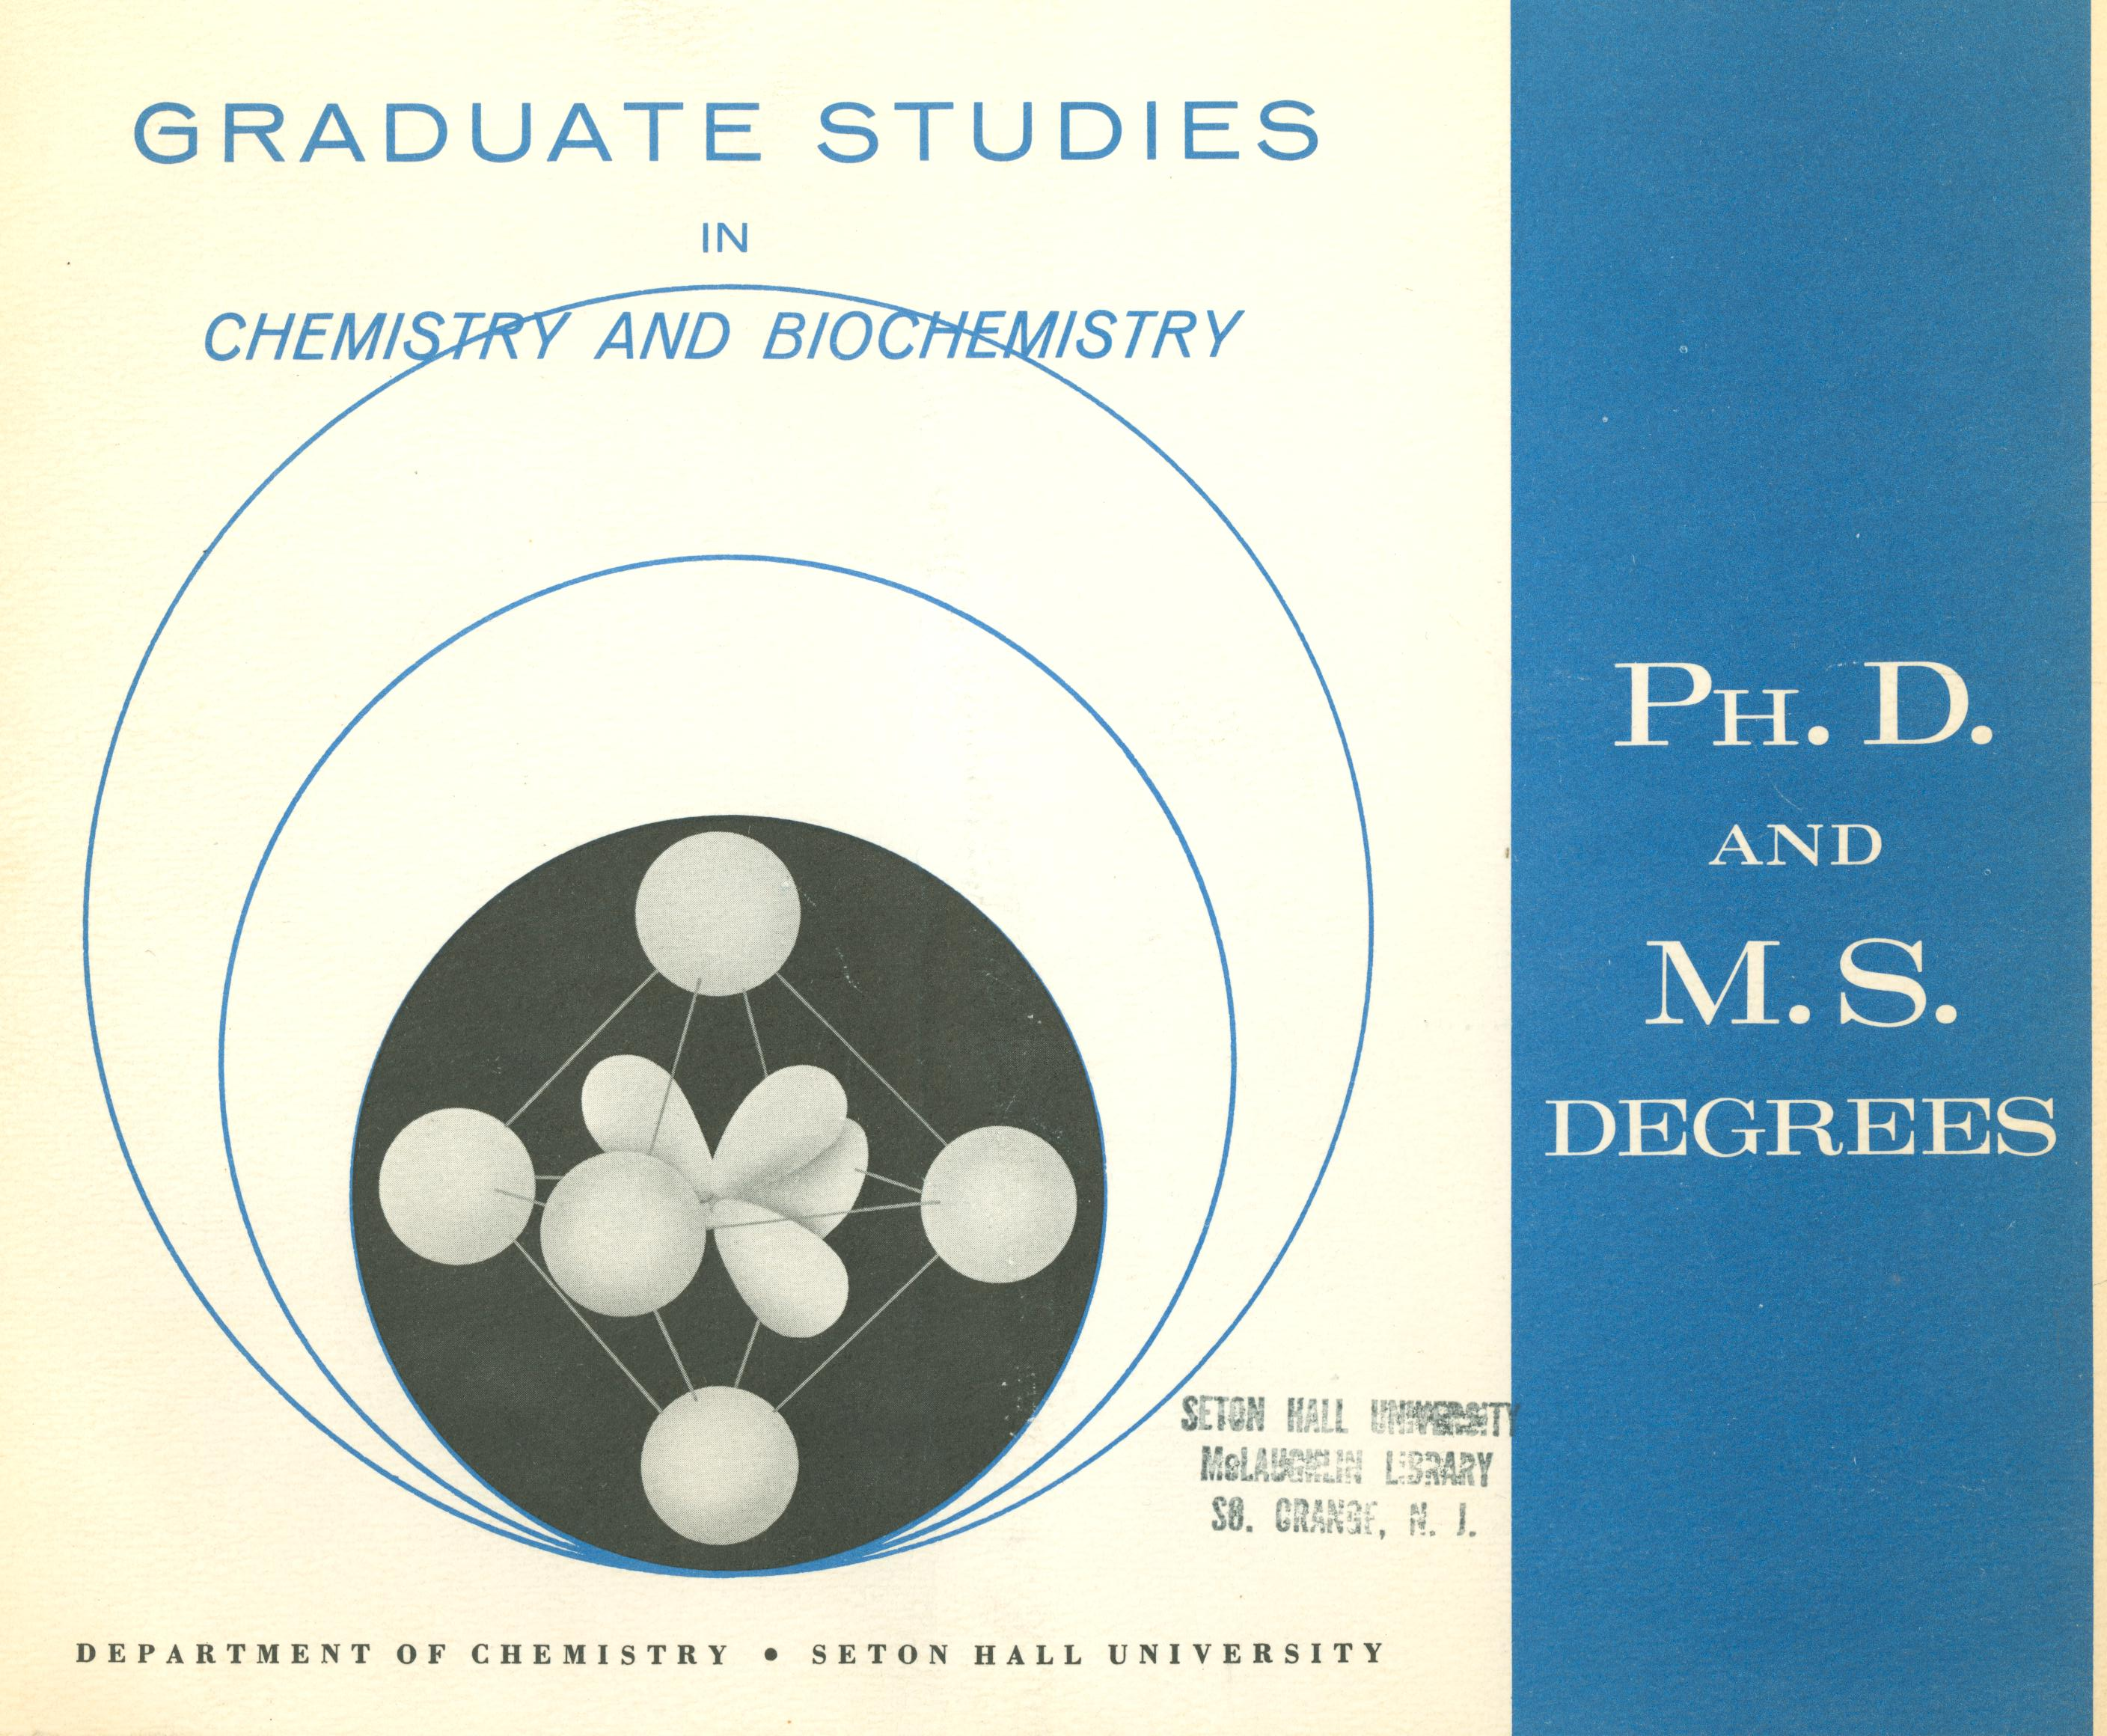 Early Chemistry Department booklet: Graduate Studies in Chemistry and Biochemistry: Ph.D. and M.S. Degrees